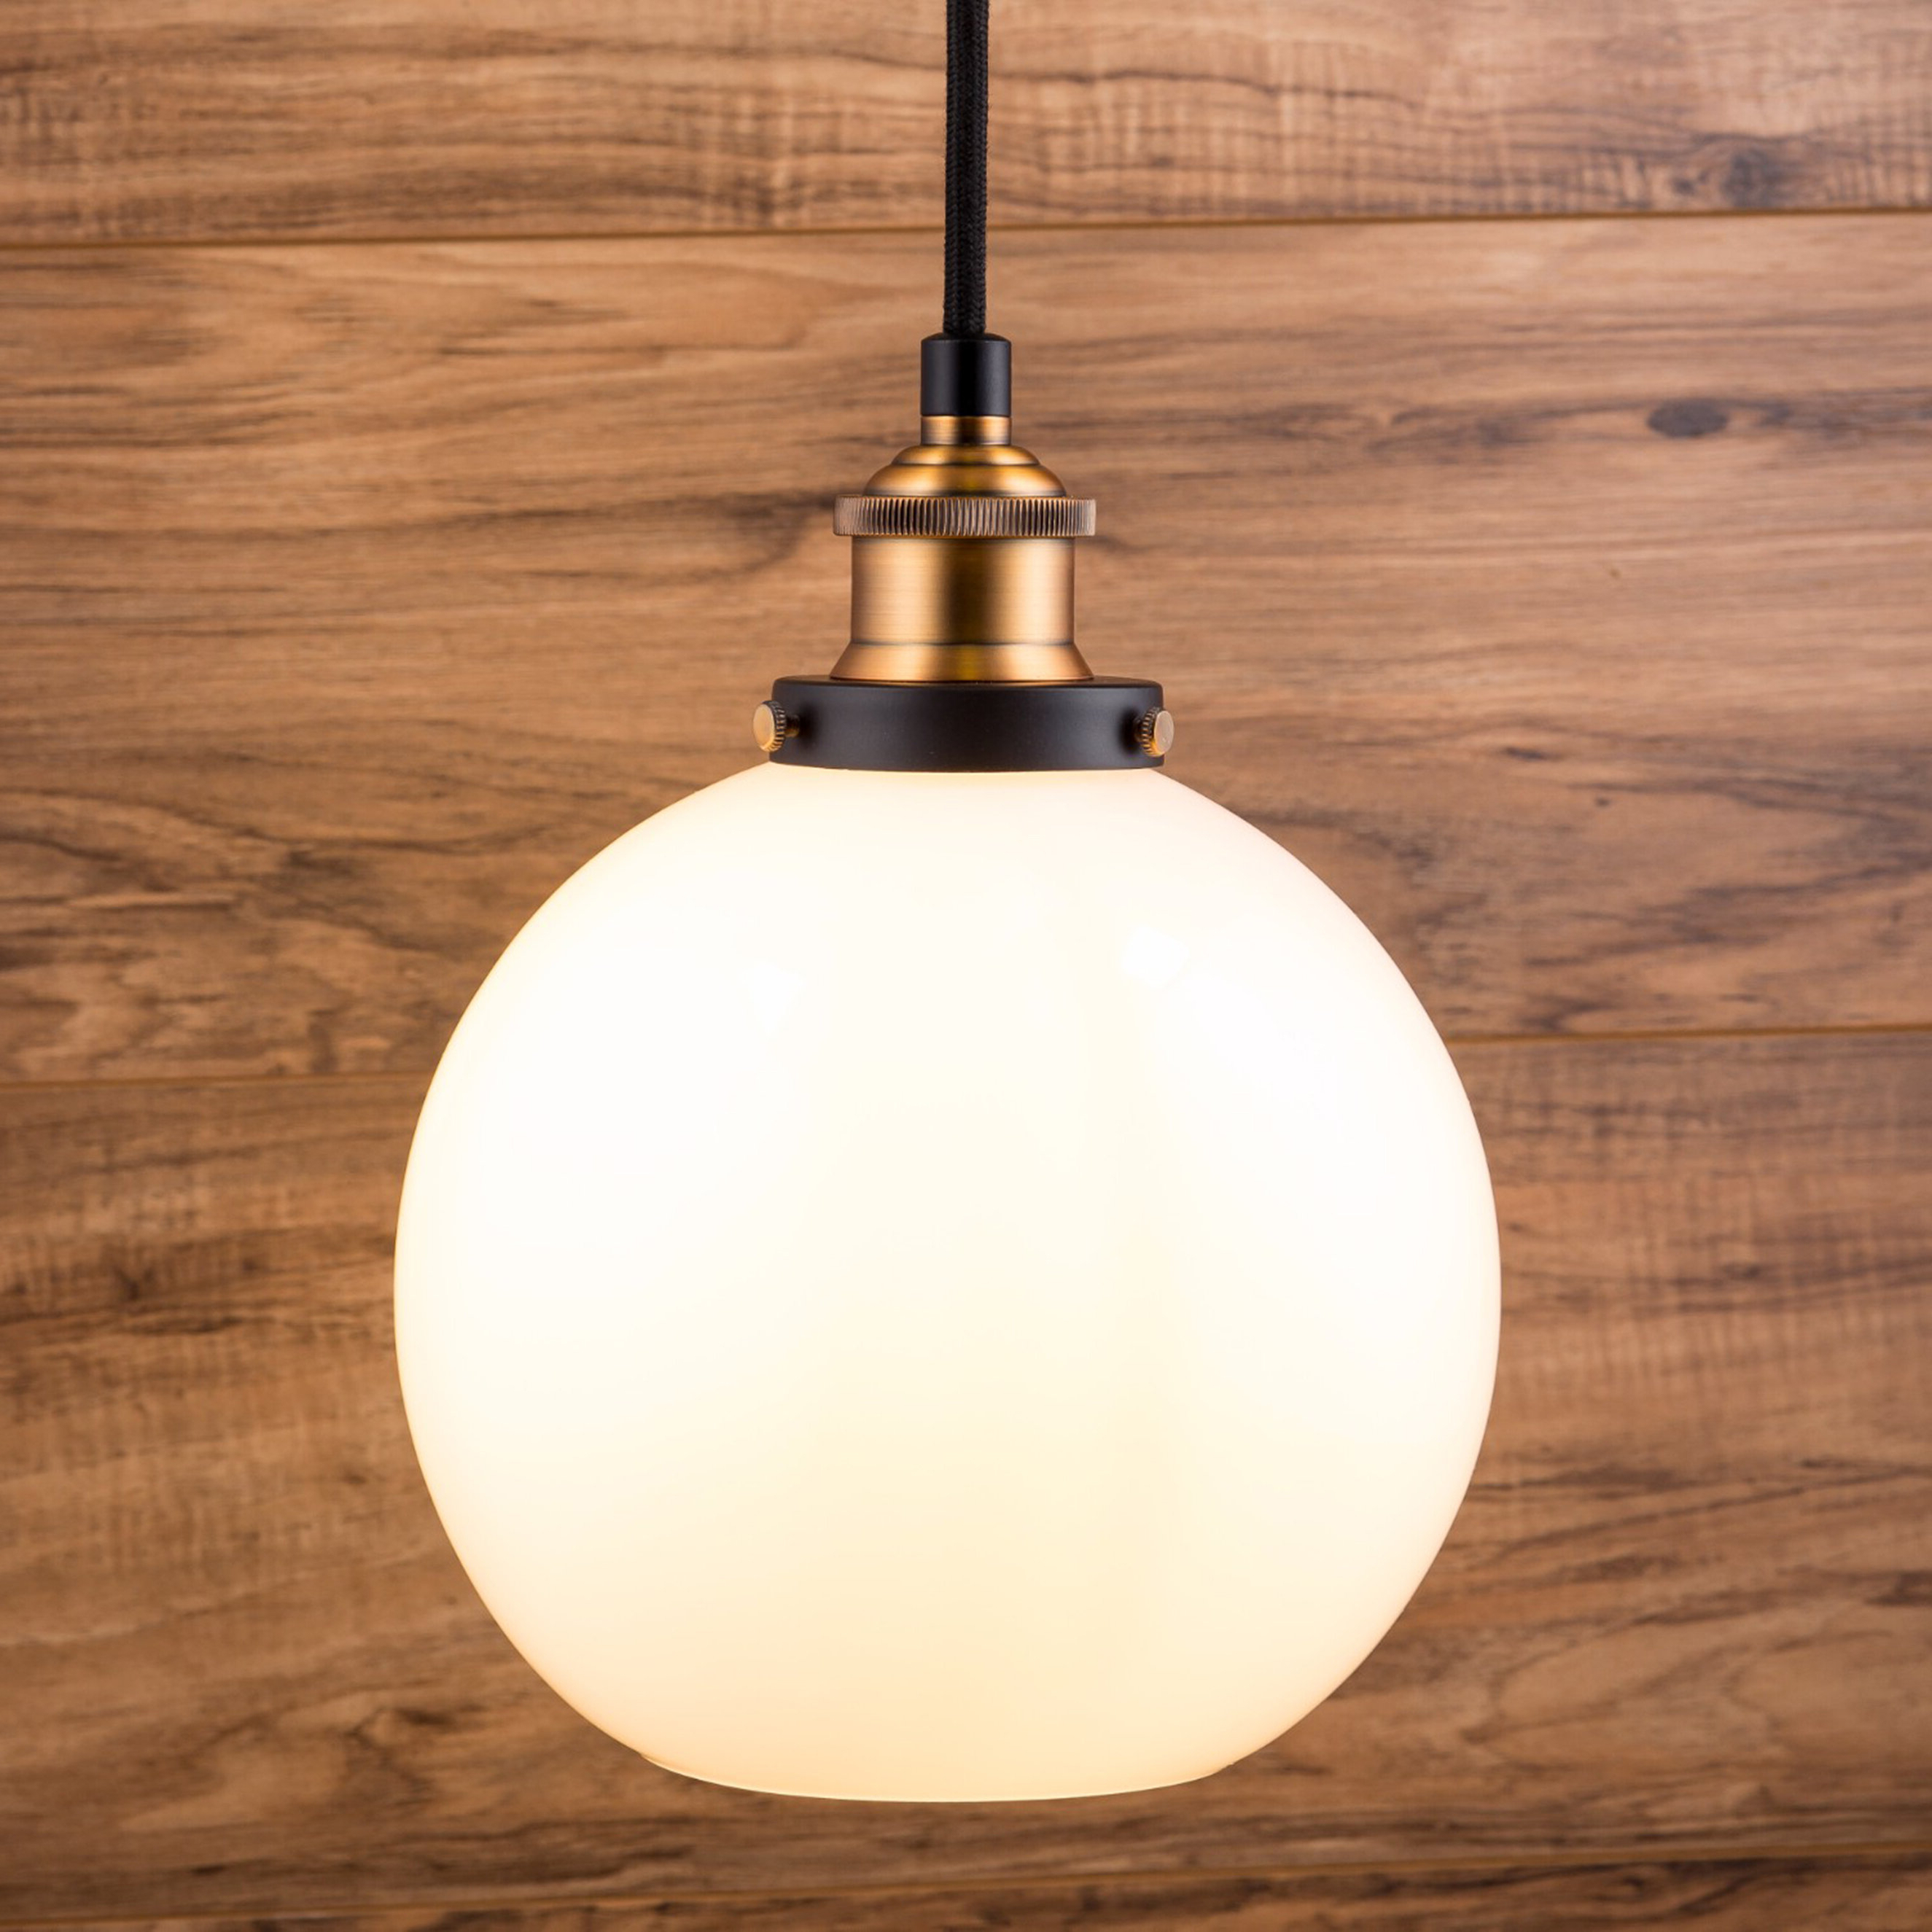 2020 Dunneback 1 Light Single Globe Pendant In Betsy 1 Light Single Globe Pendants (Gallery 10 of 20)